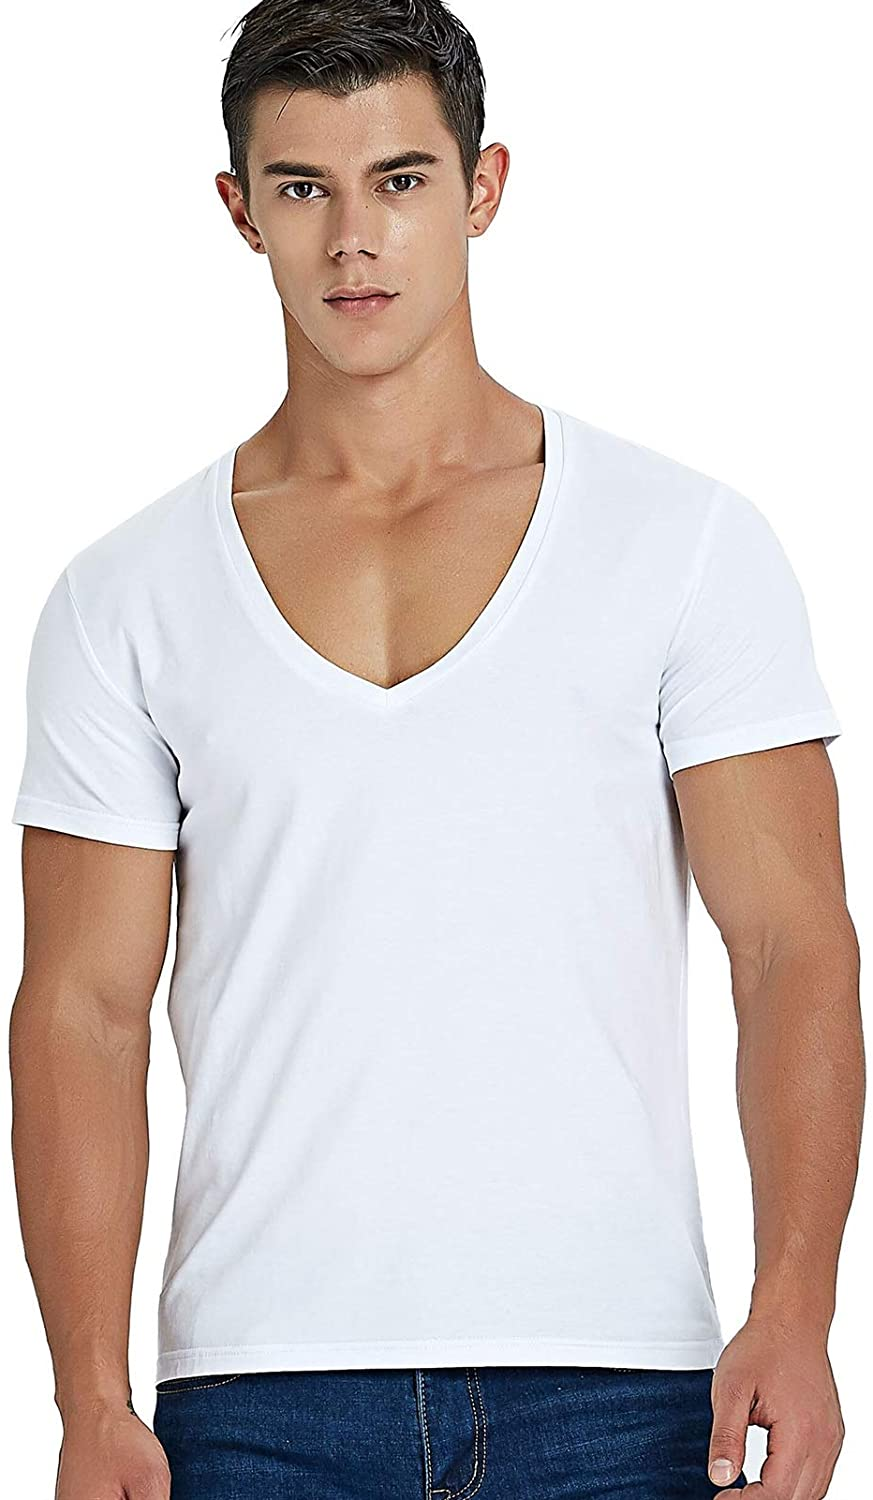 yanhuigang Fashionable and exquisite T-shirt T Shirt,Deep V Neck T Shirt For Men Low Cut Scoop Neck Top Tees Drop Tail Short Sleeve Male Cotton Casual Style (Color : White, Size : M)